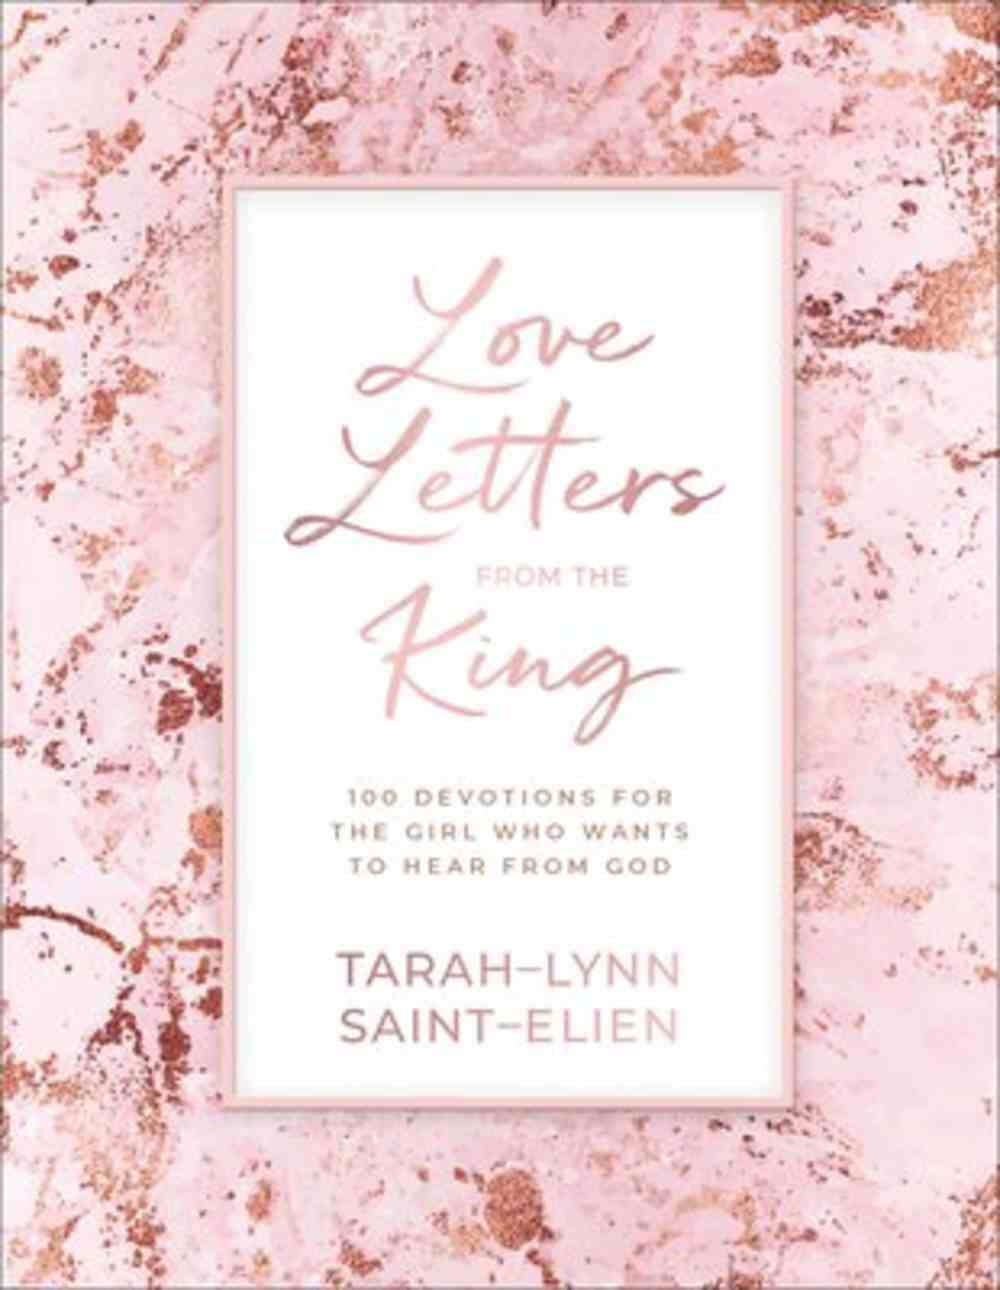 Love Letters From the King: 100 Devotions For the Girl Who Wants to Hear From God Hardback